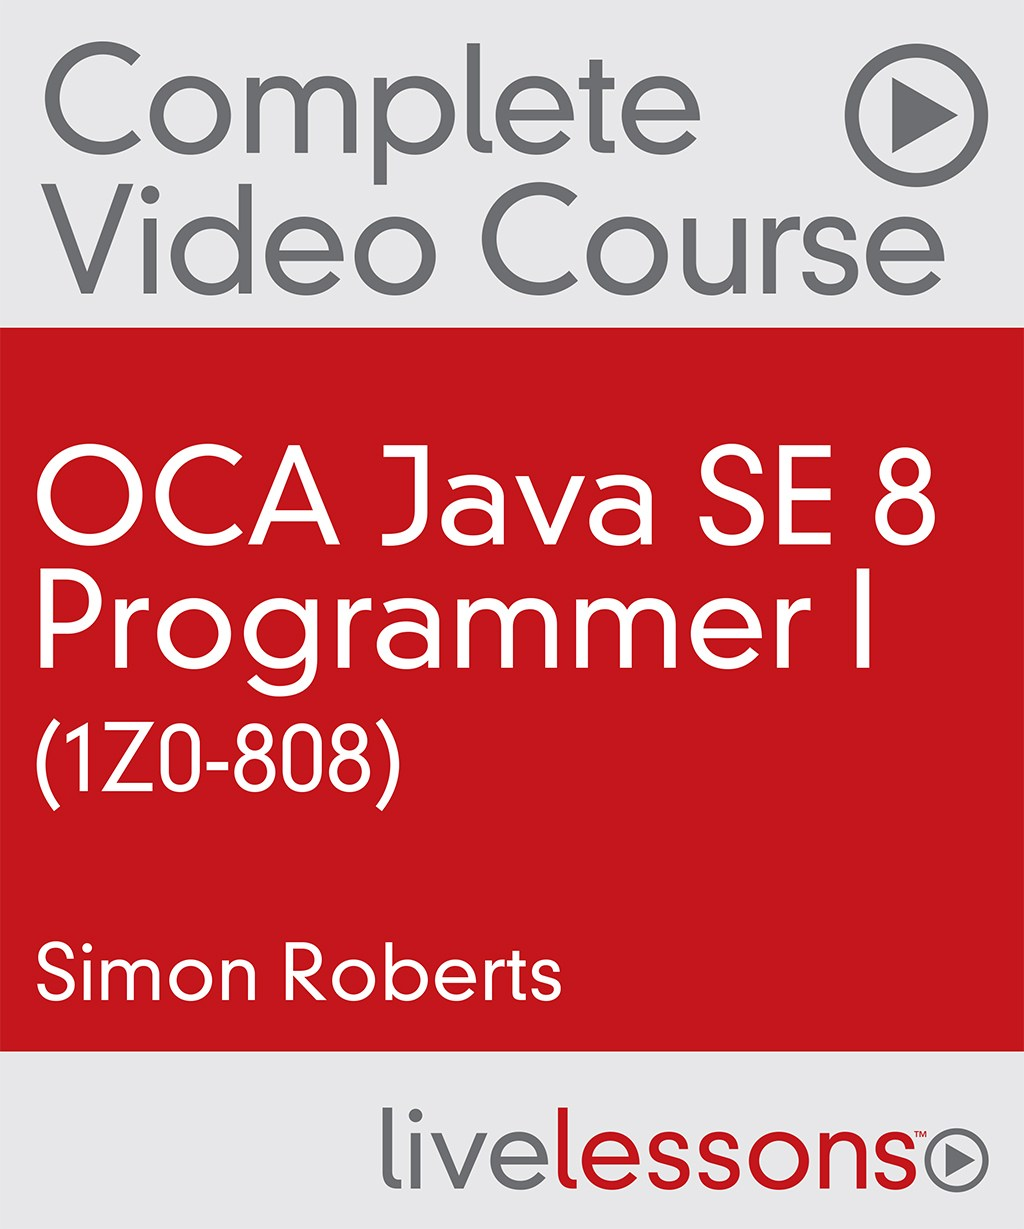 OCA Java SE 8 Programmer I (1Z0-808) Complete Video Course